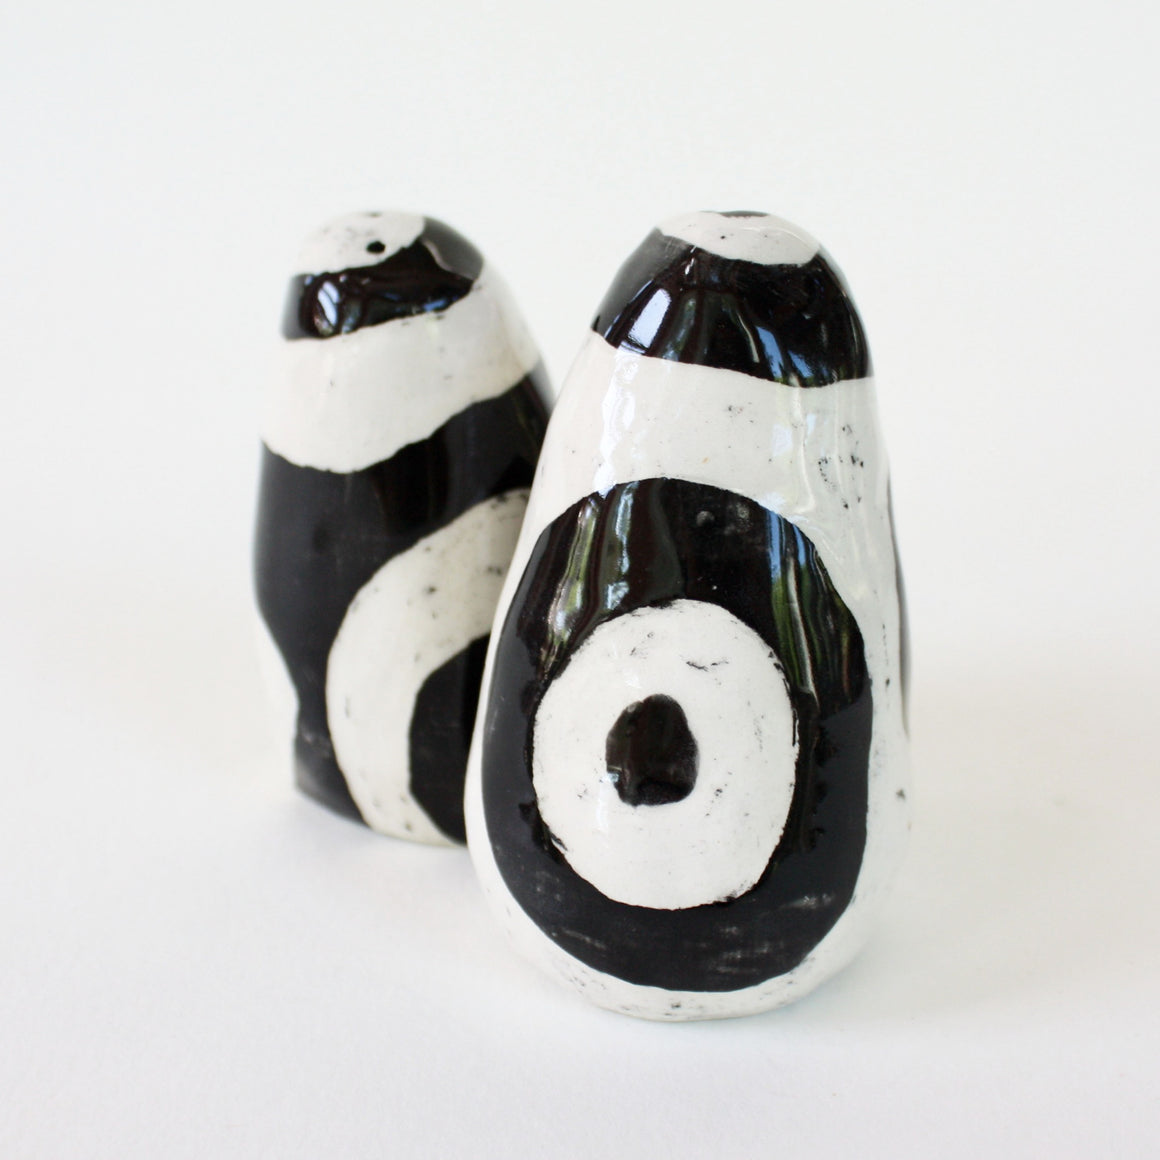 Pair of black and white salt and pepper shakers with large circle